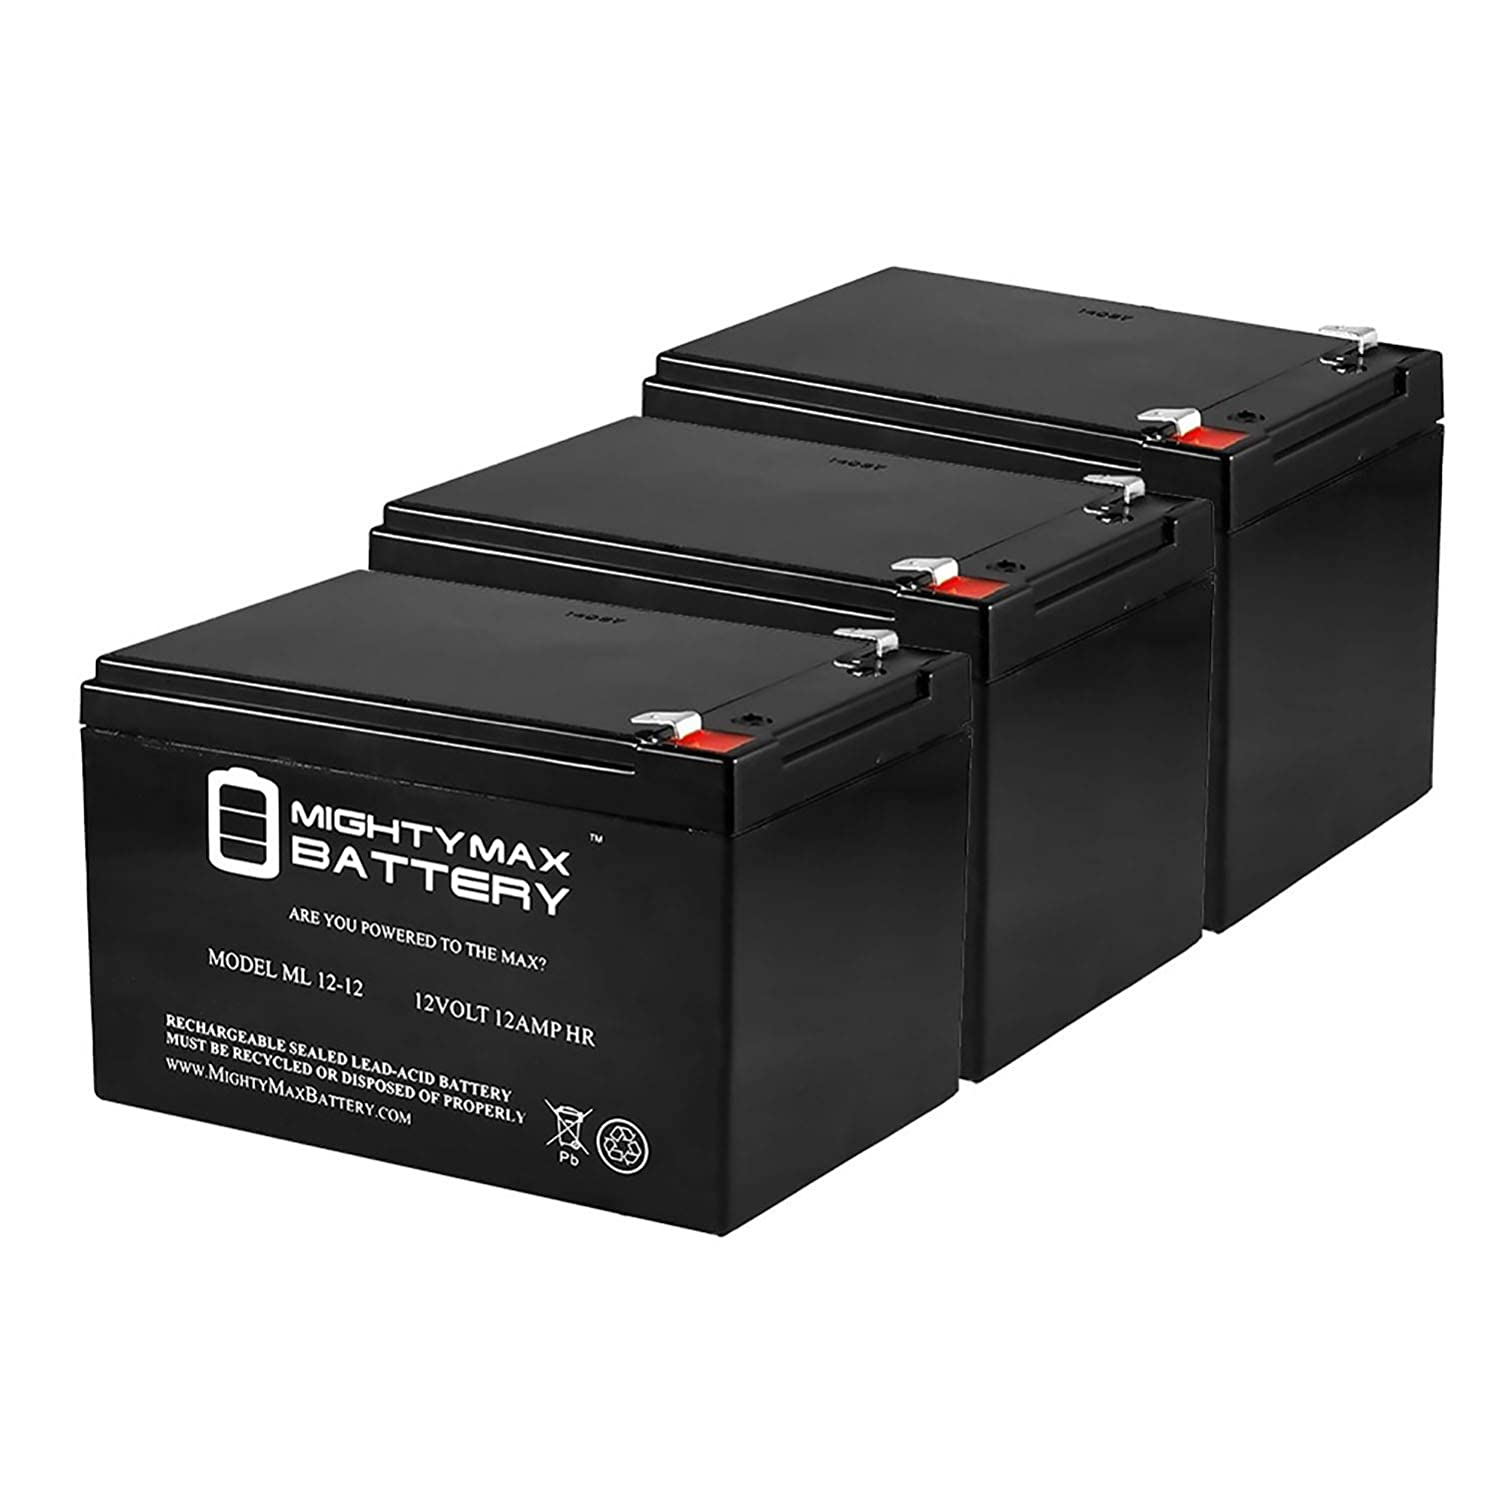 Mighty Max Battery 12V12AH F2 Battery for Razor Dirt Rocket SX500-15128101 - 3 Pack Brand Product